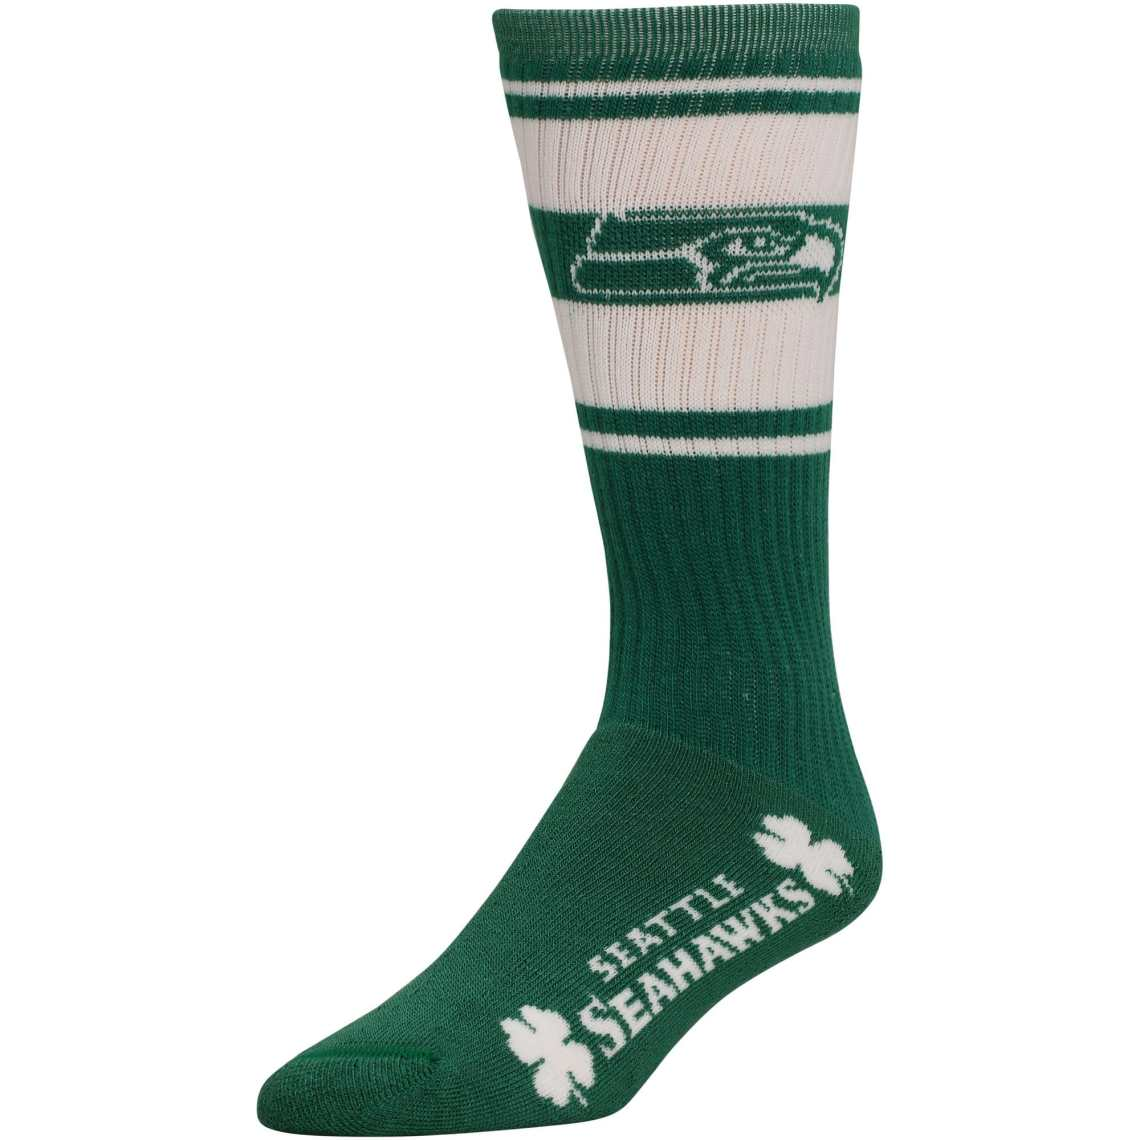 Seattle Seahawks Ladies St. Paddy's Day Super Tube Socks - Kelly Green